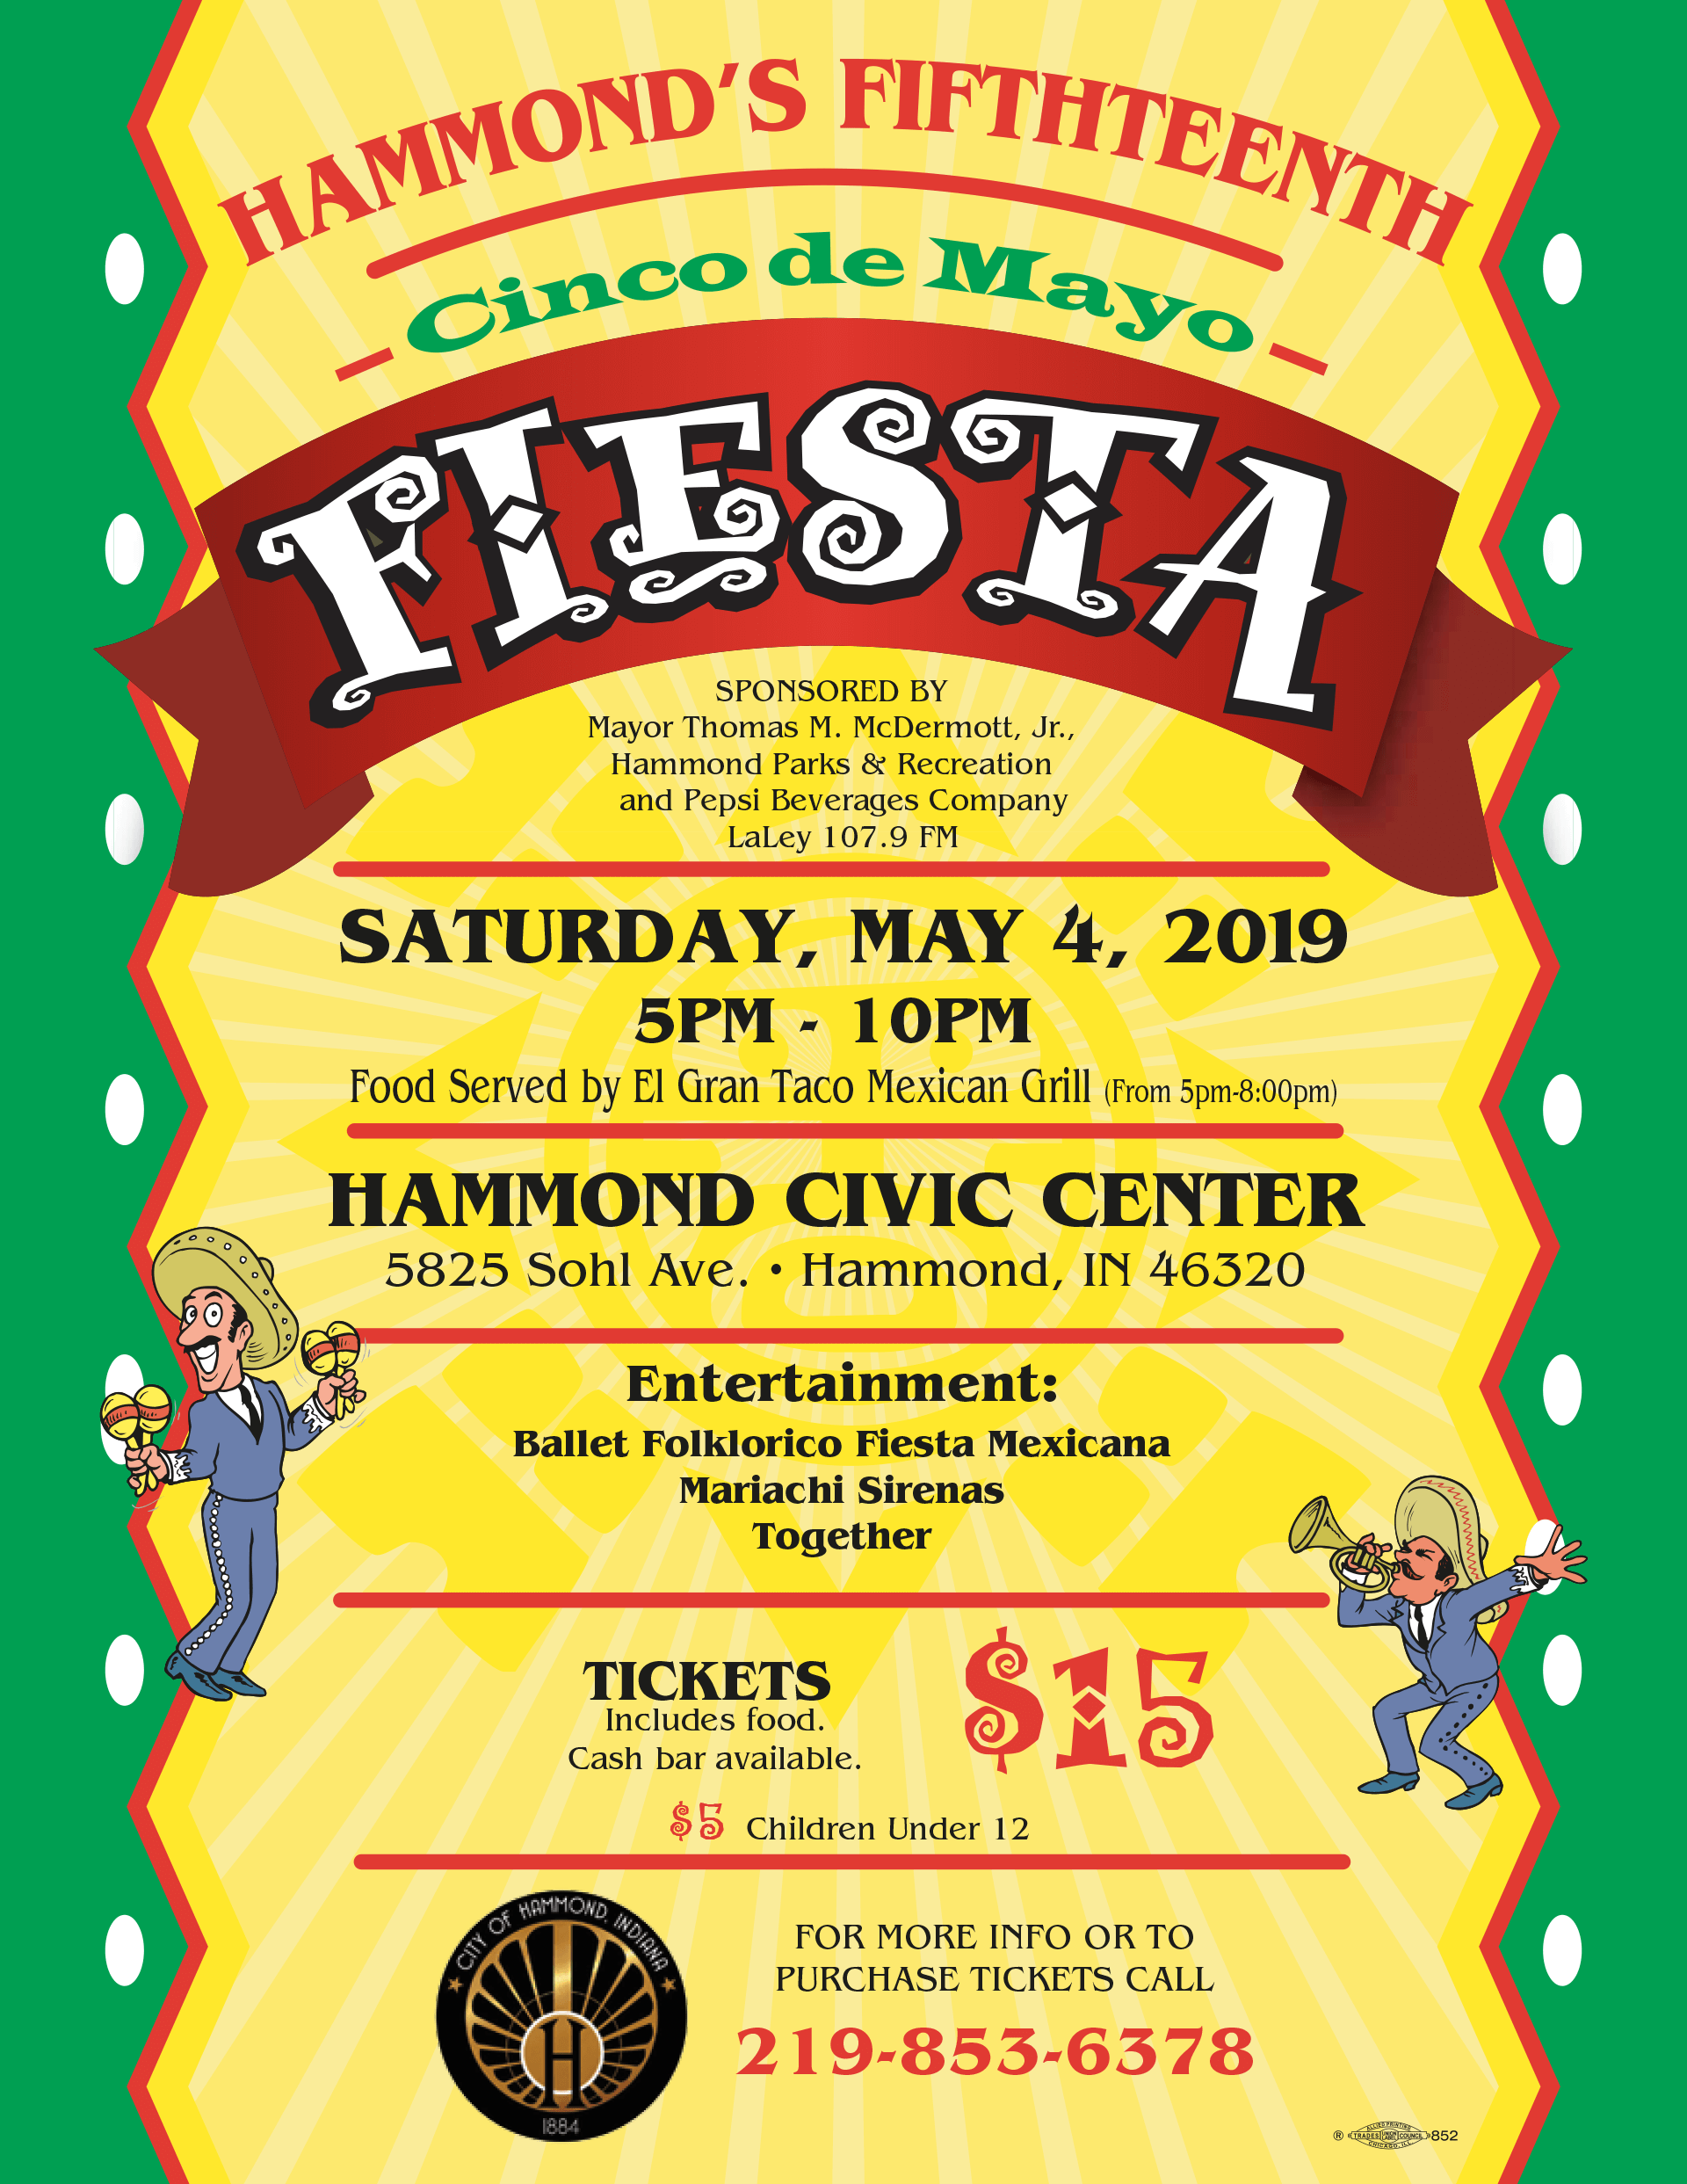 Hammond's 15th Annual Cinco de Mayo Celebration